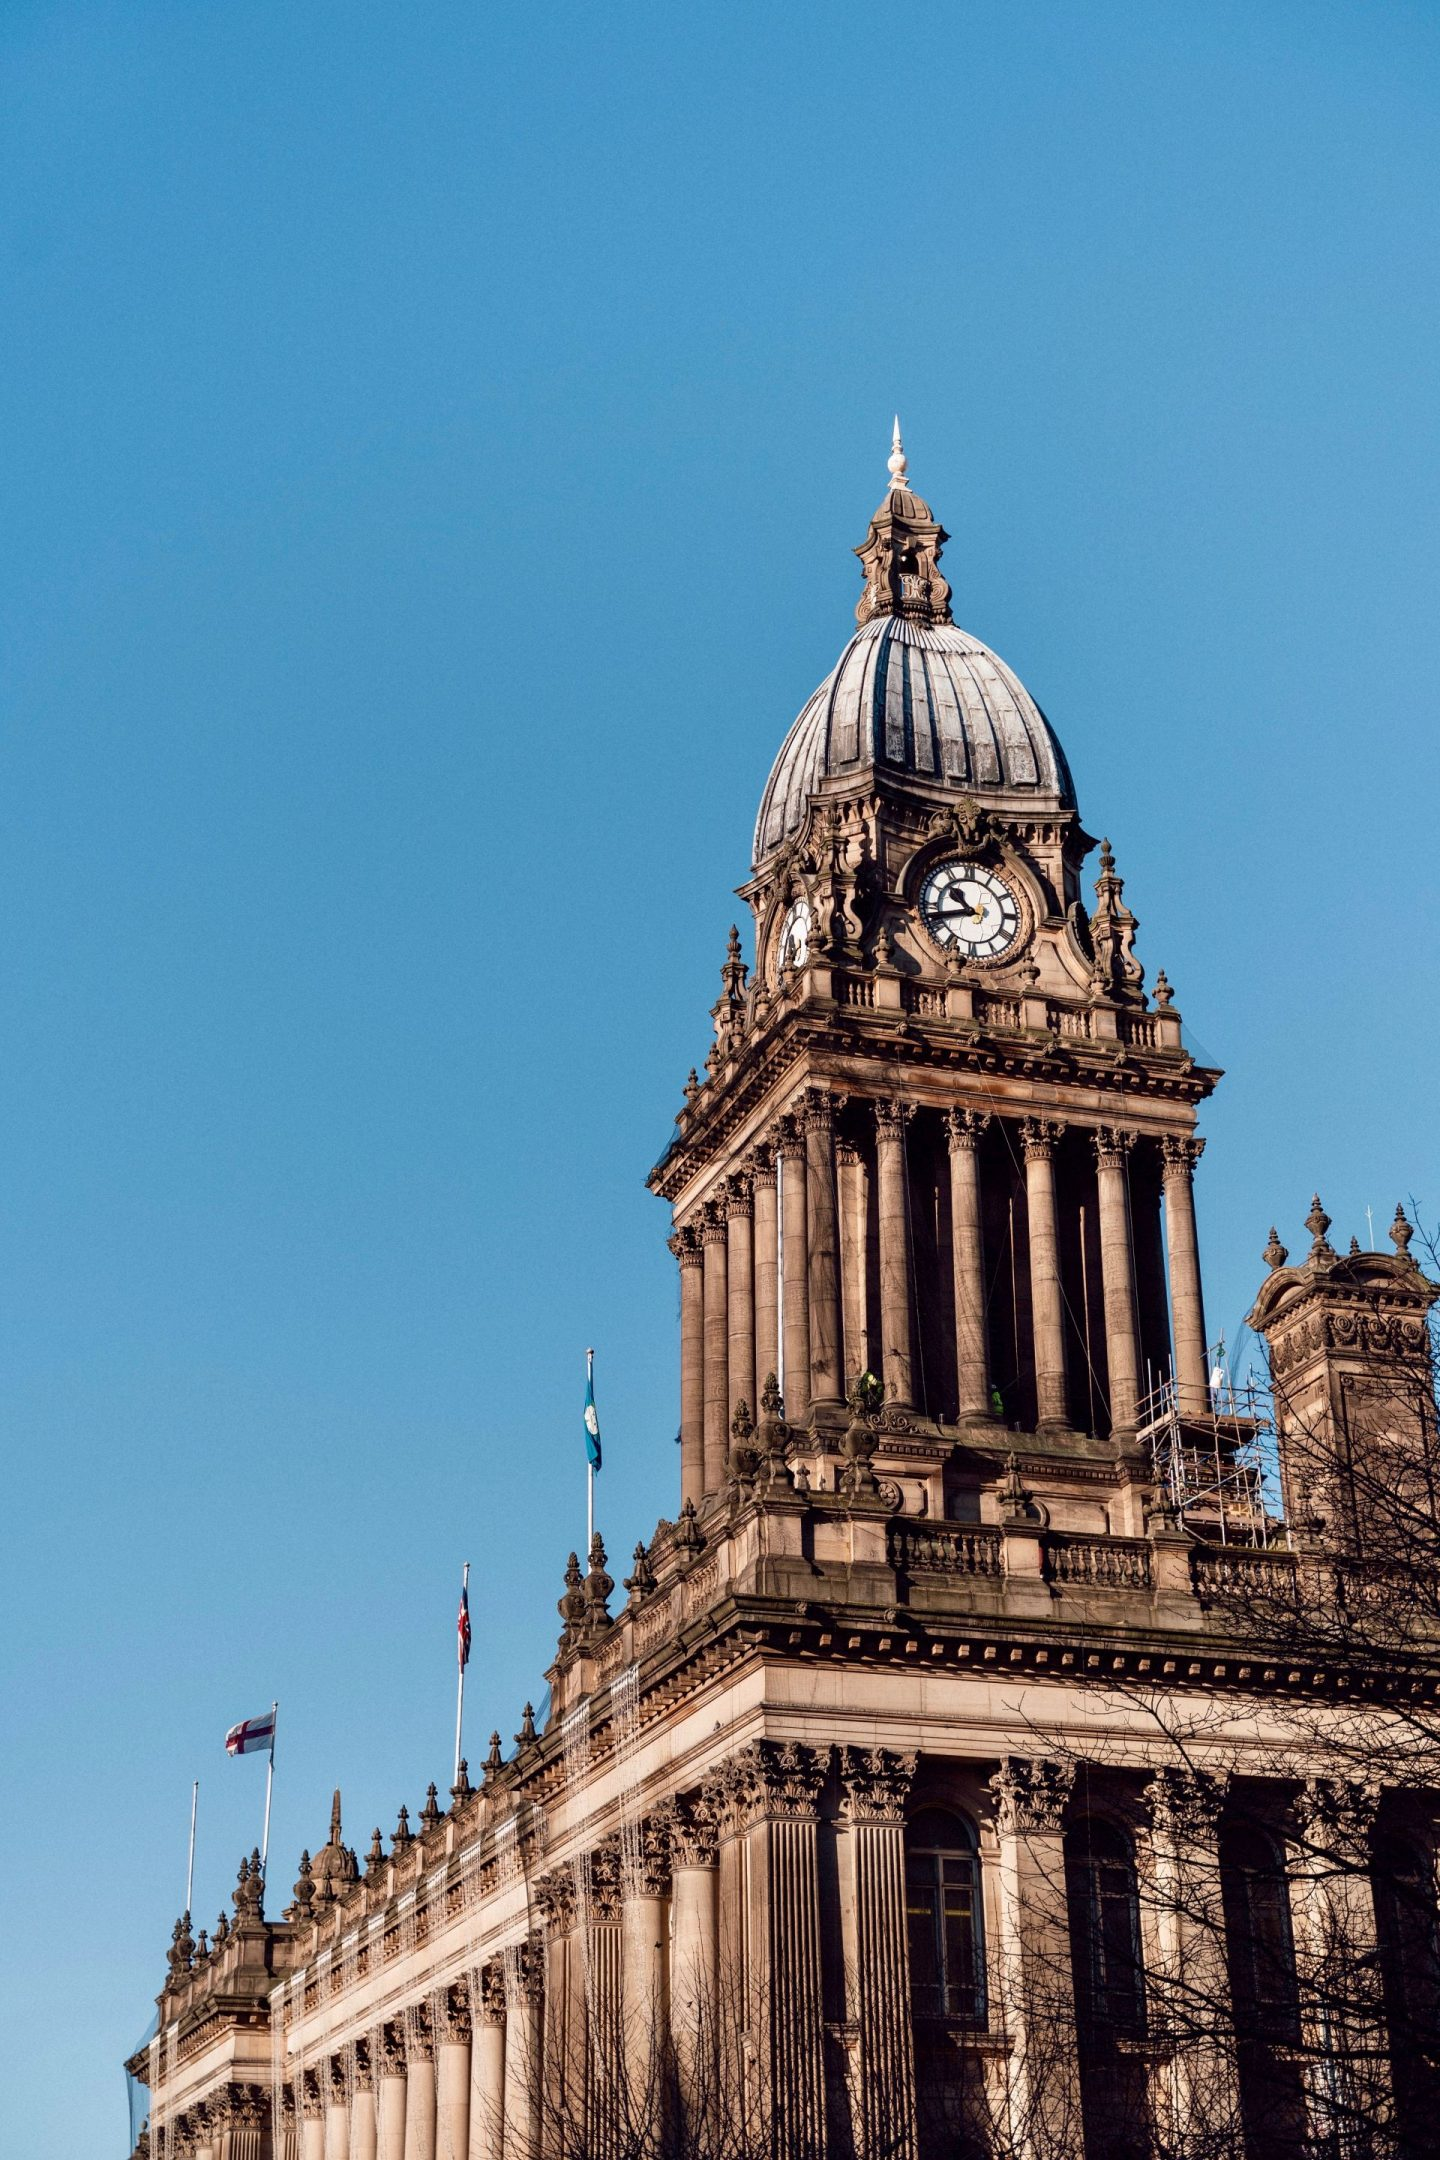 Things to do in Leeds city centre- an image of Leeds town hall taken from ground level, showing the tower against a clear blue sky